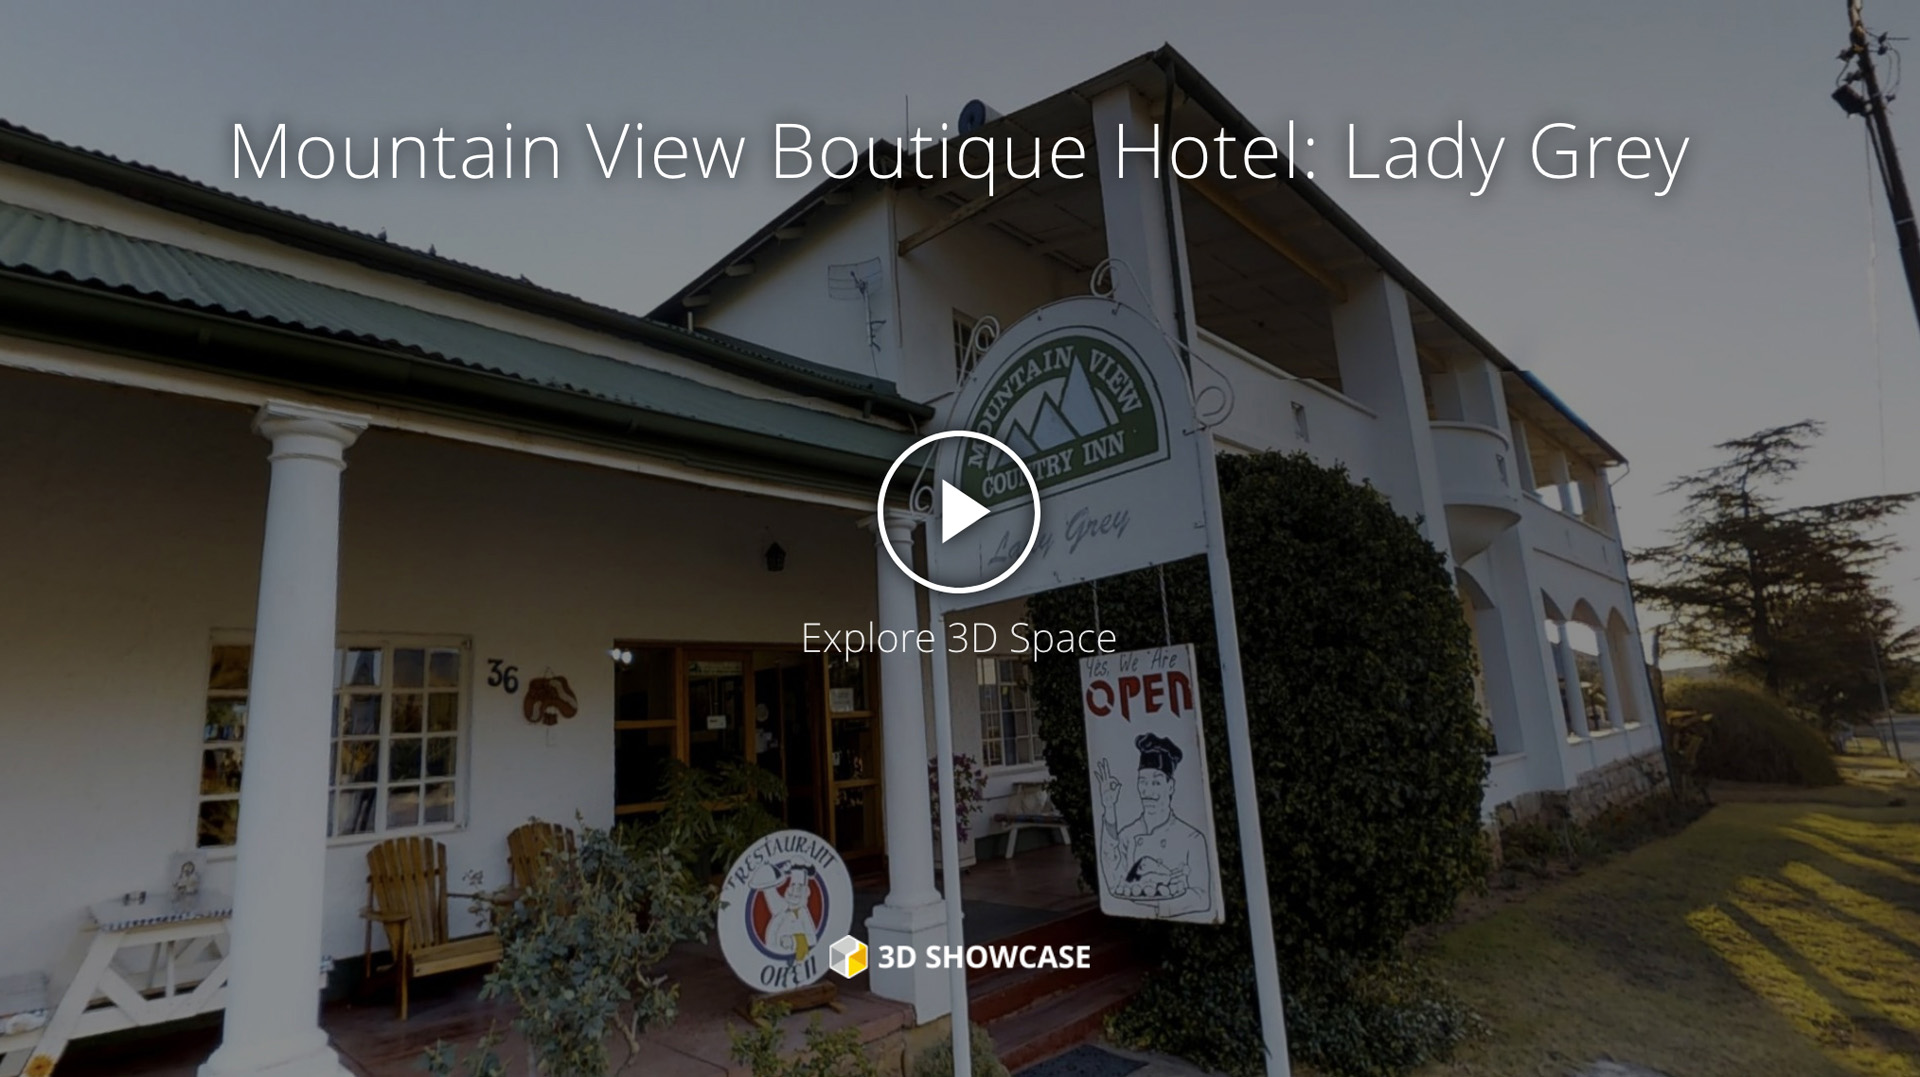 Hotels, Lodges, Resorts and B&Bs